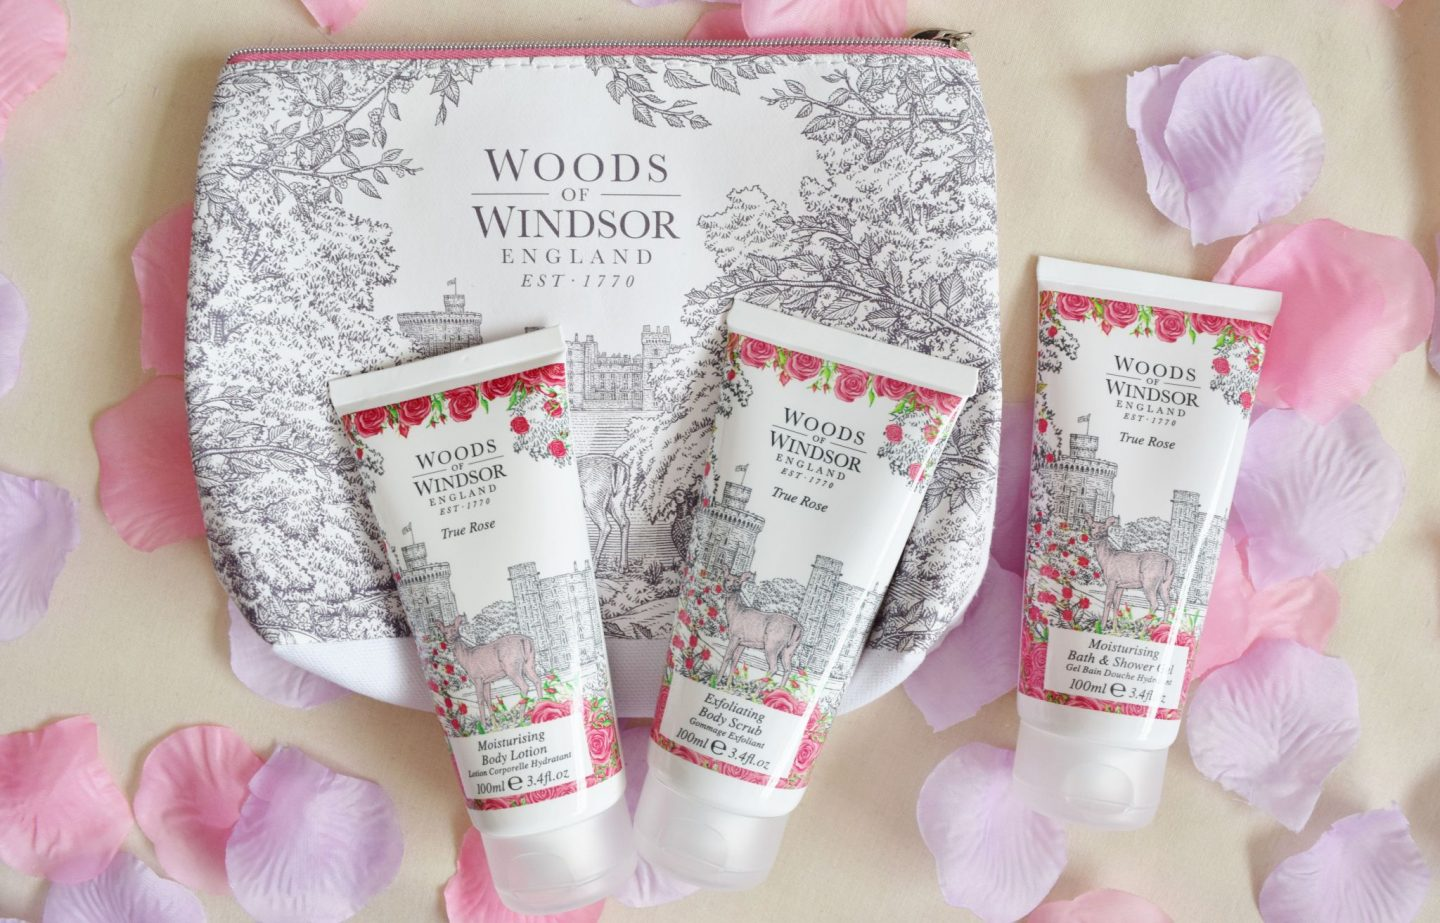 Woods of Windsor True Rose Bath & Body Collection